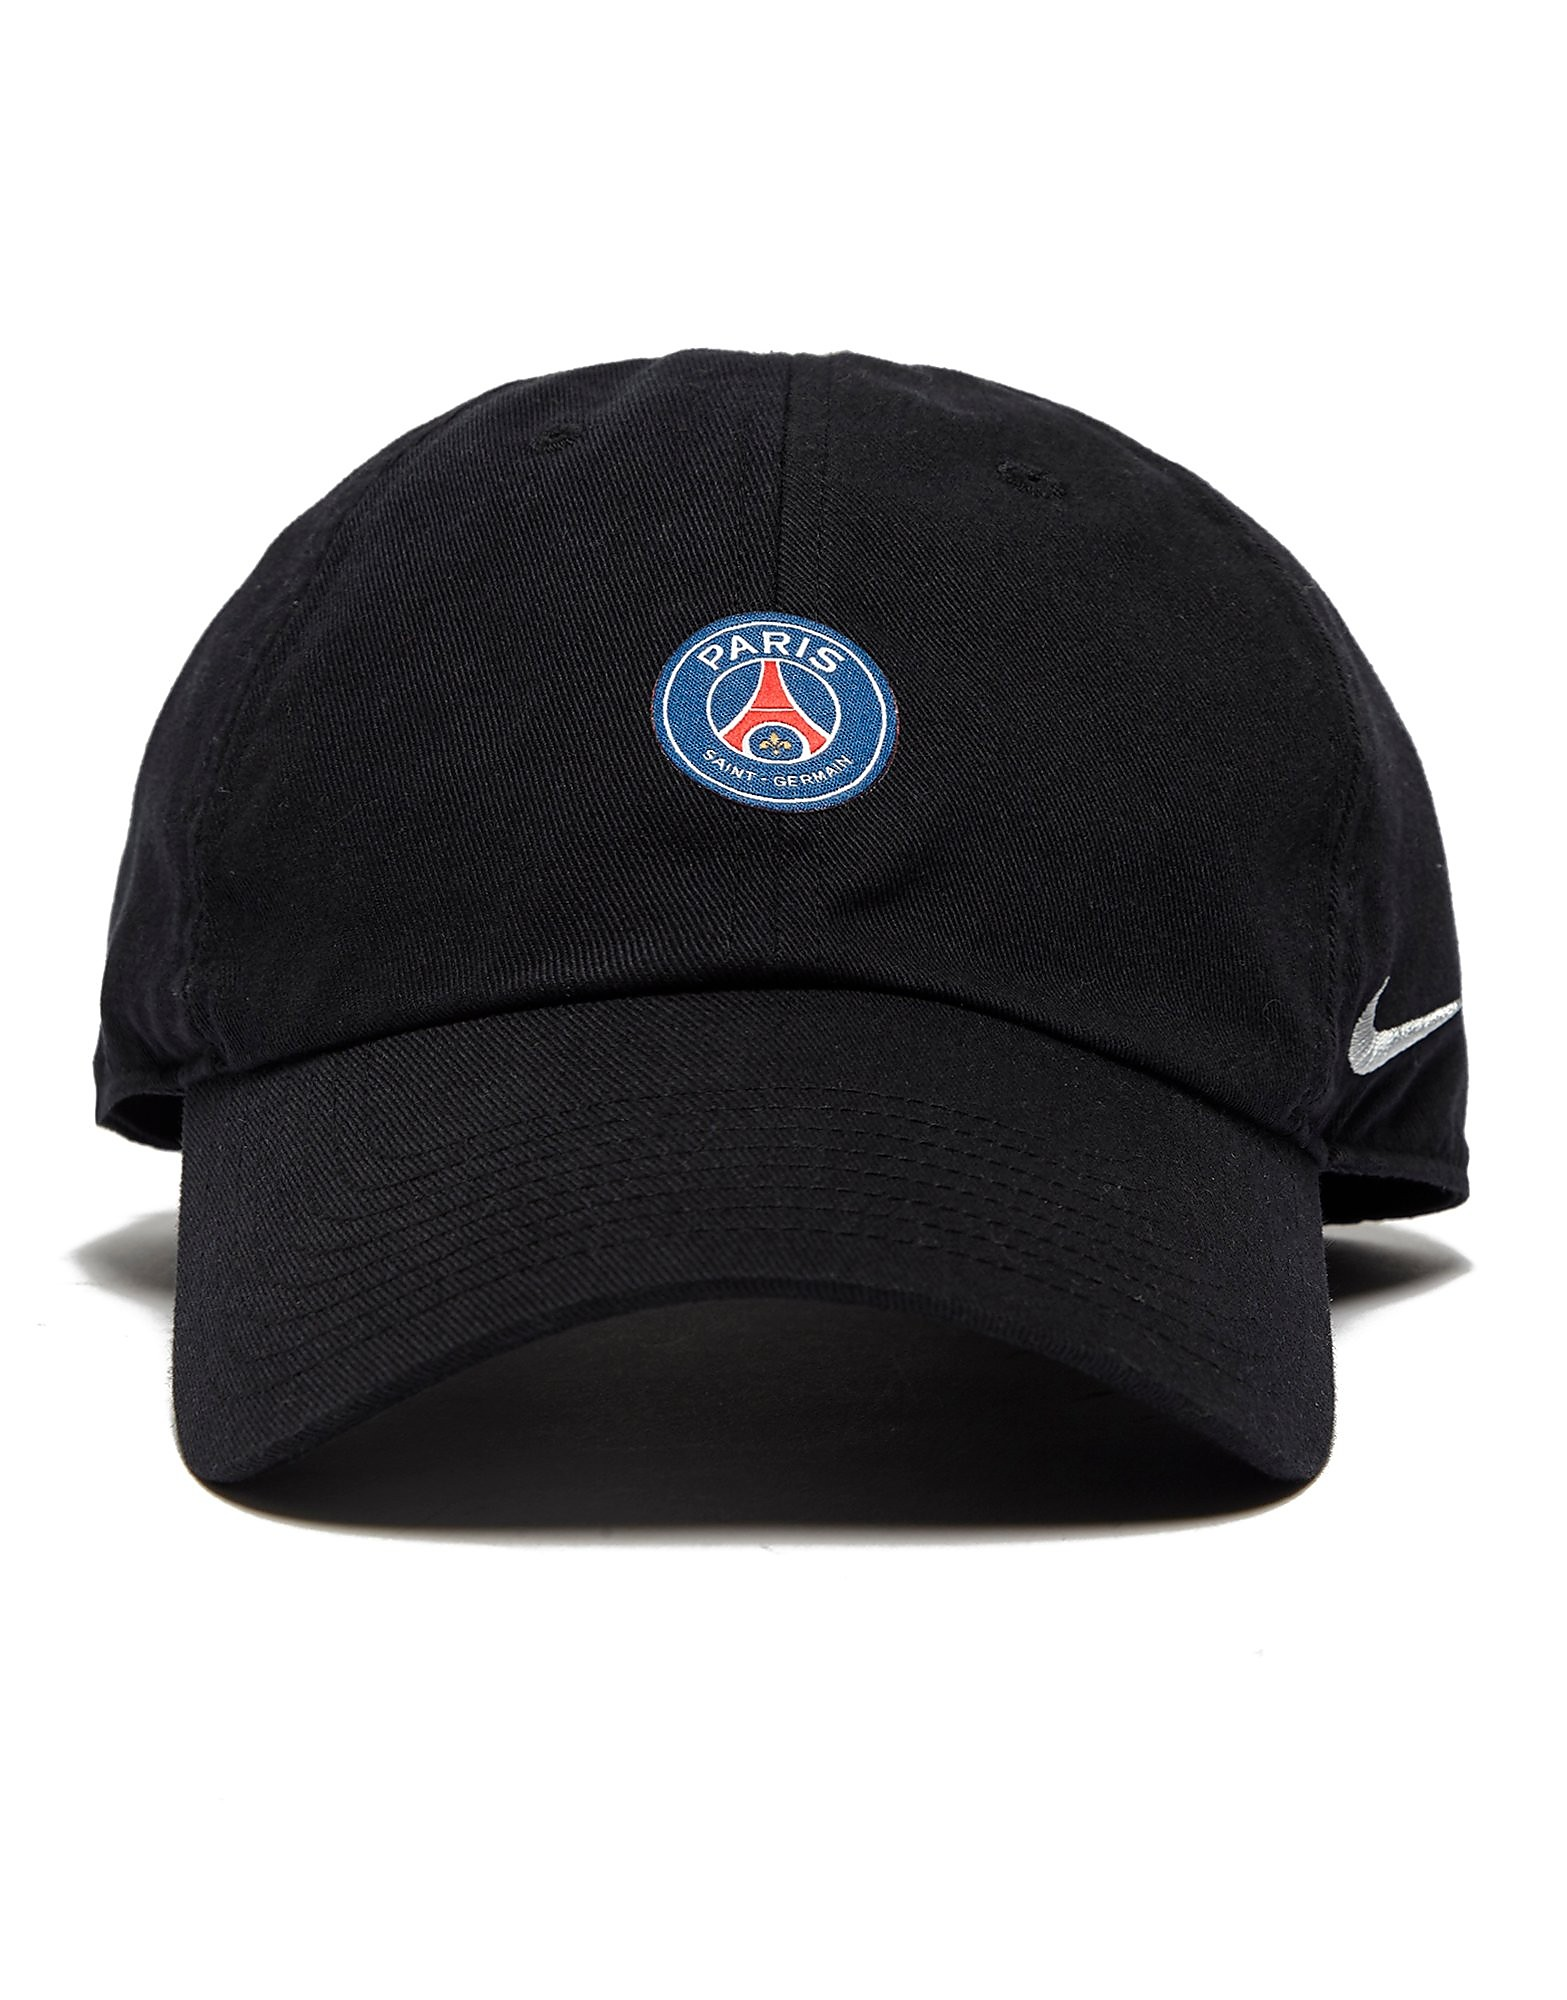 Nike Casquette Paris Saint Germain H86